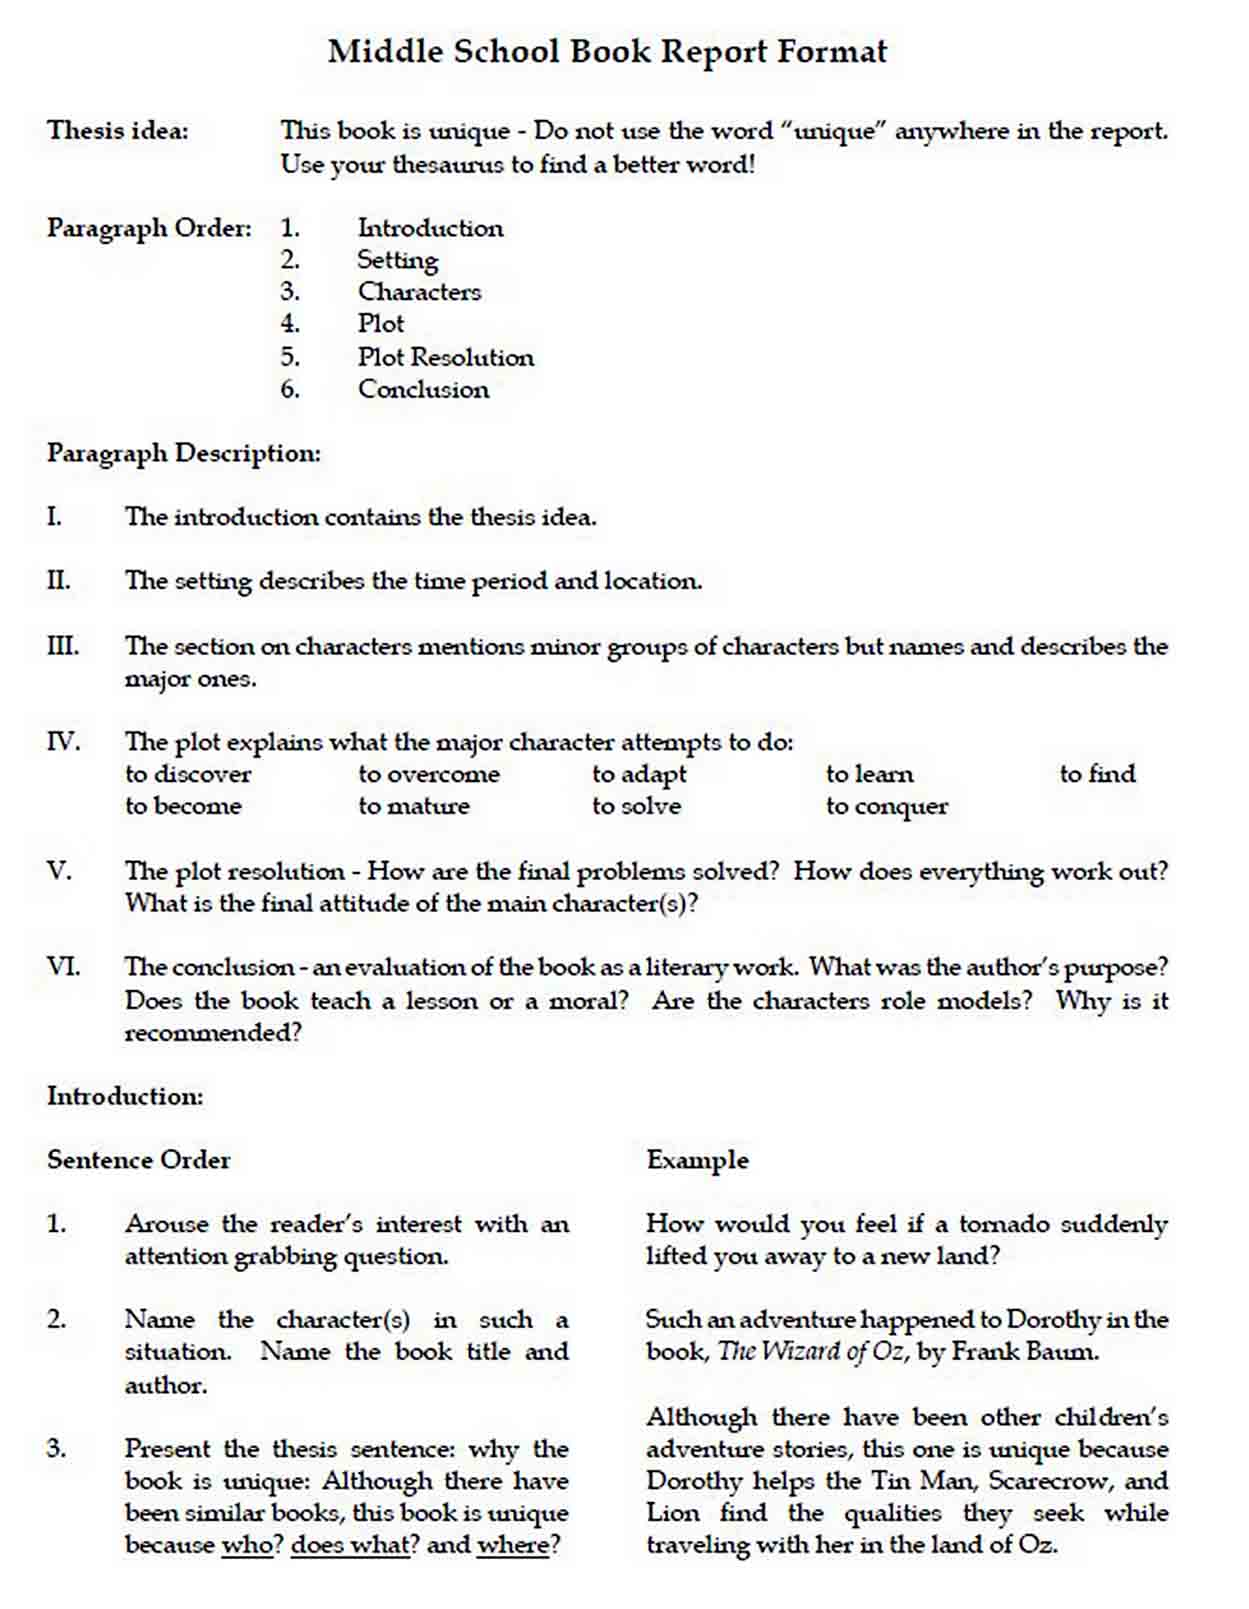 Middle School Book Report Format sample